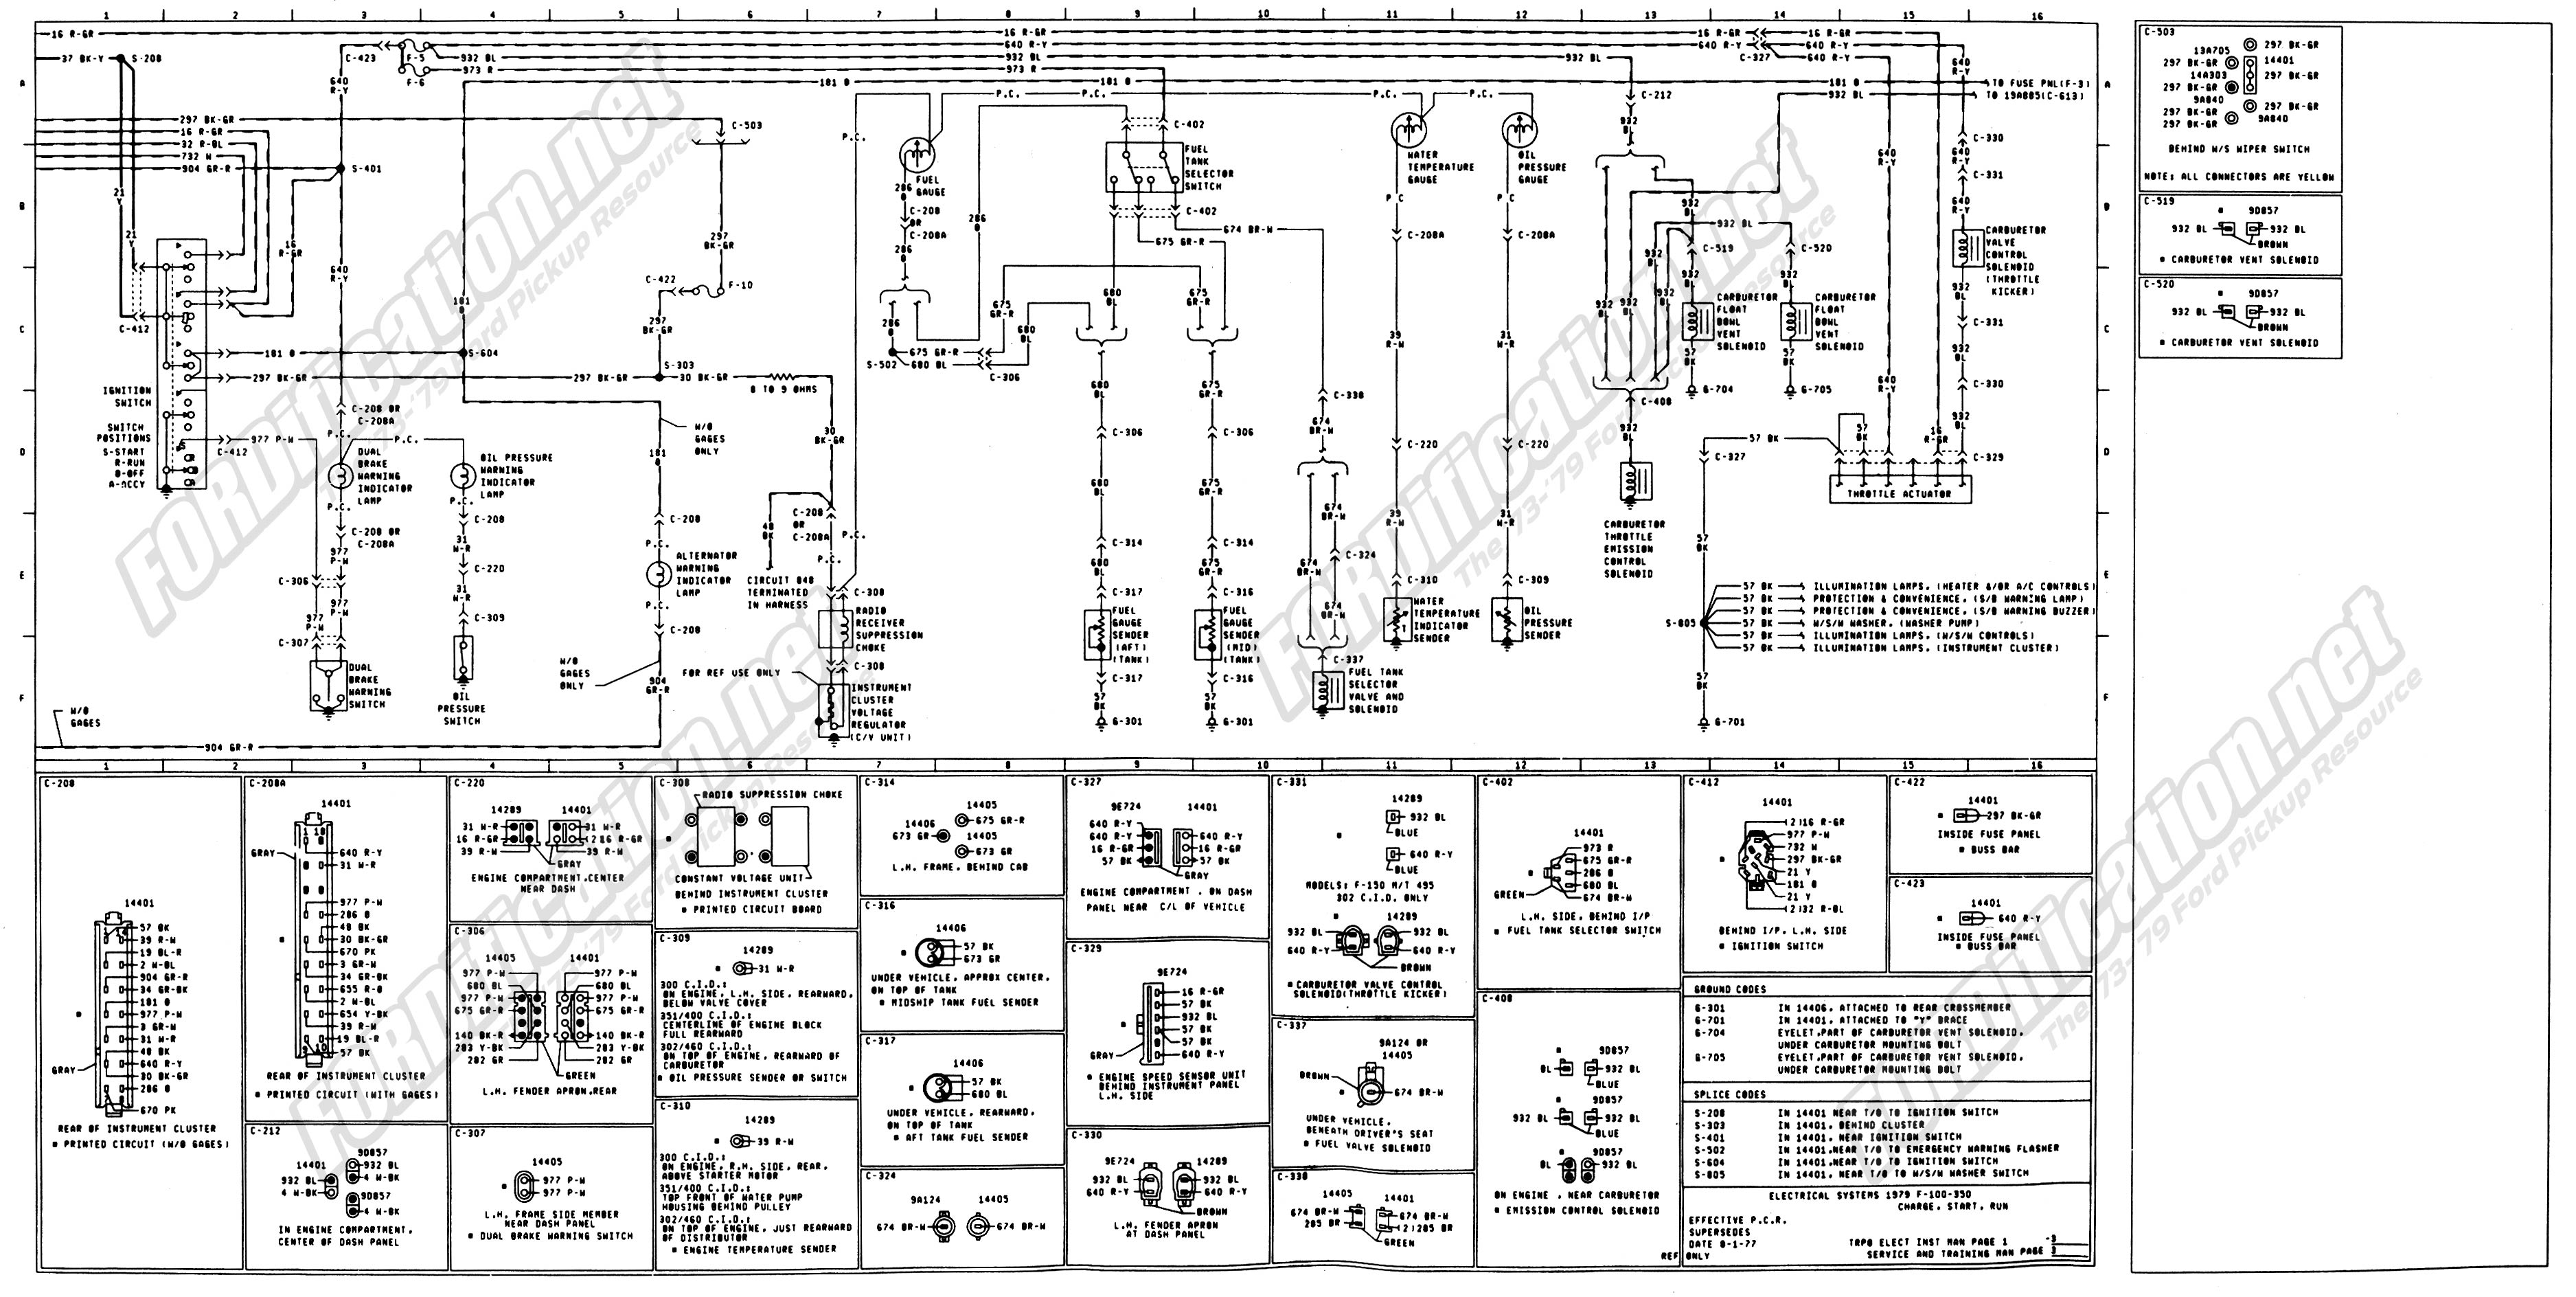 wiring_79master_3of9 1973 1979 ford truck wiring diagrams & schematics fordification net 2006 ford f150 ignition wiring diagram at mifinder.co